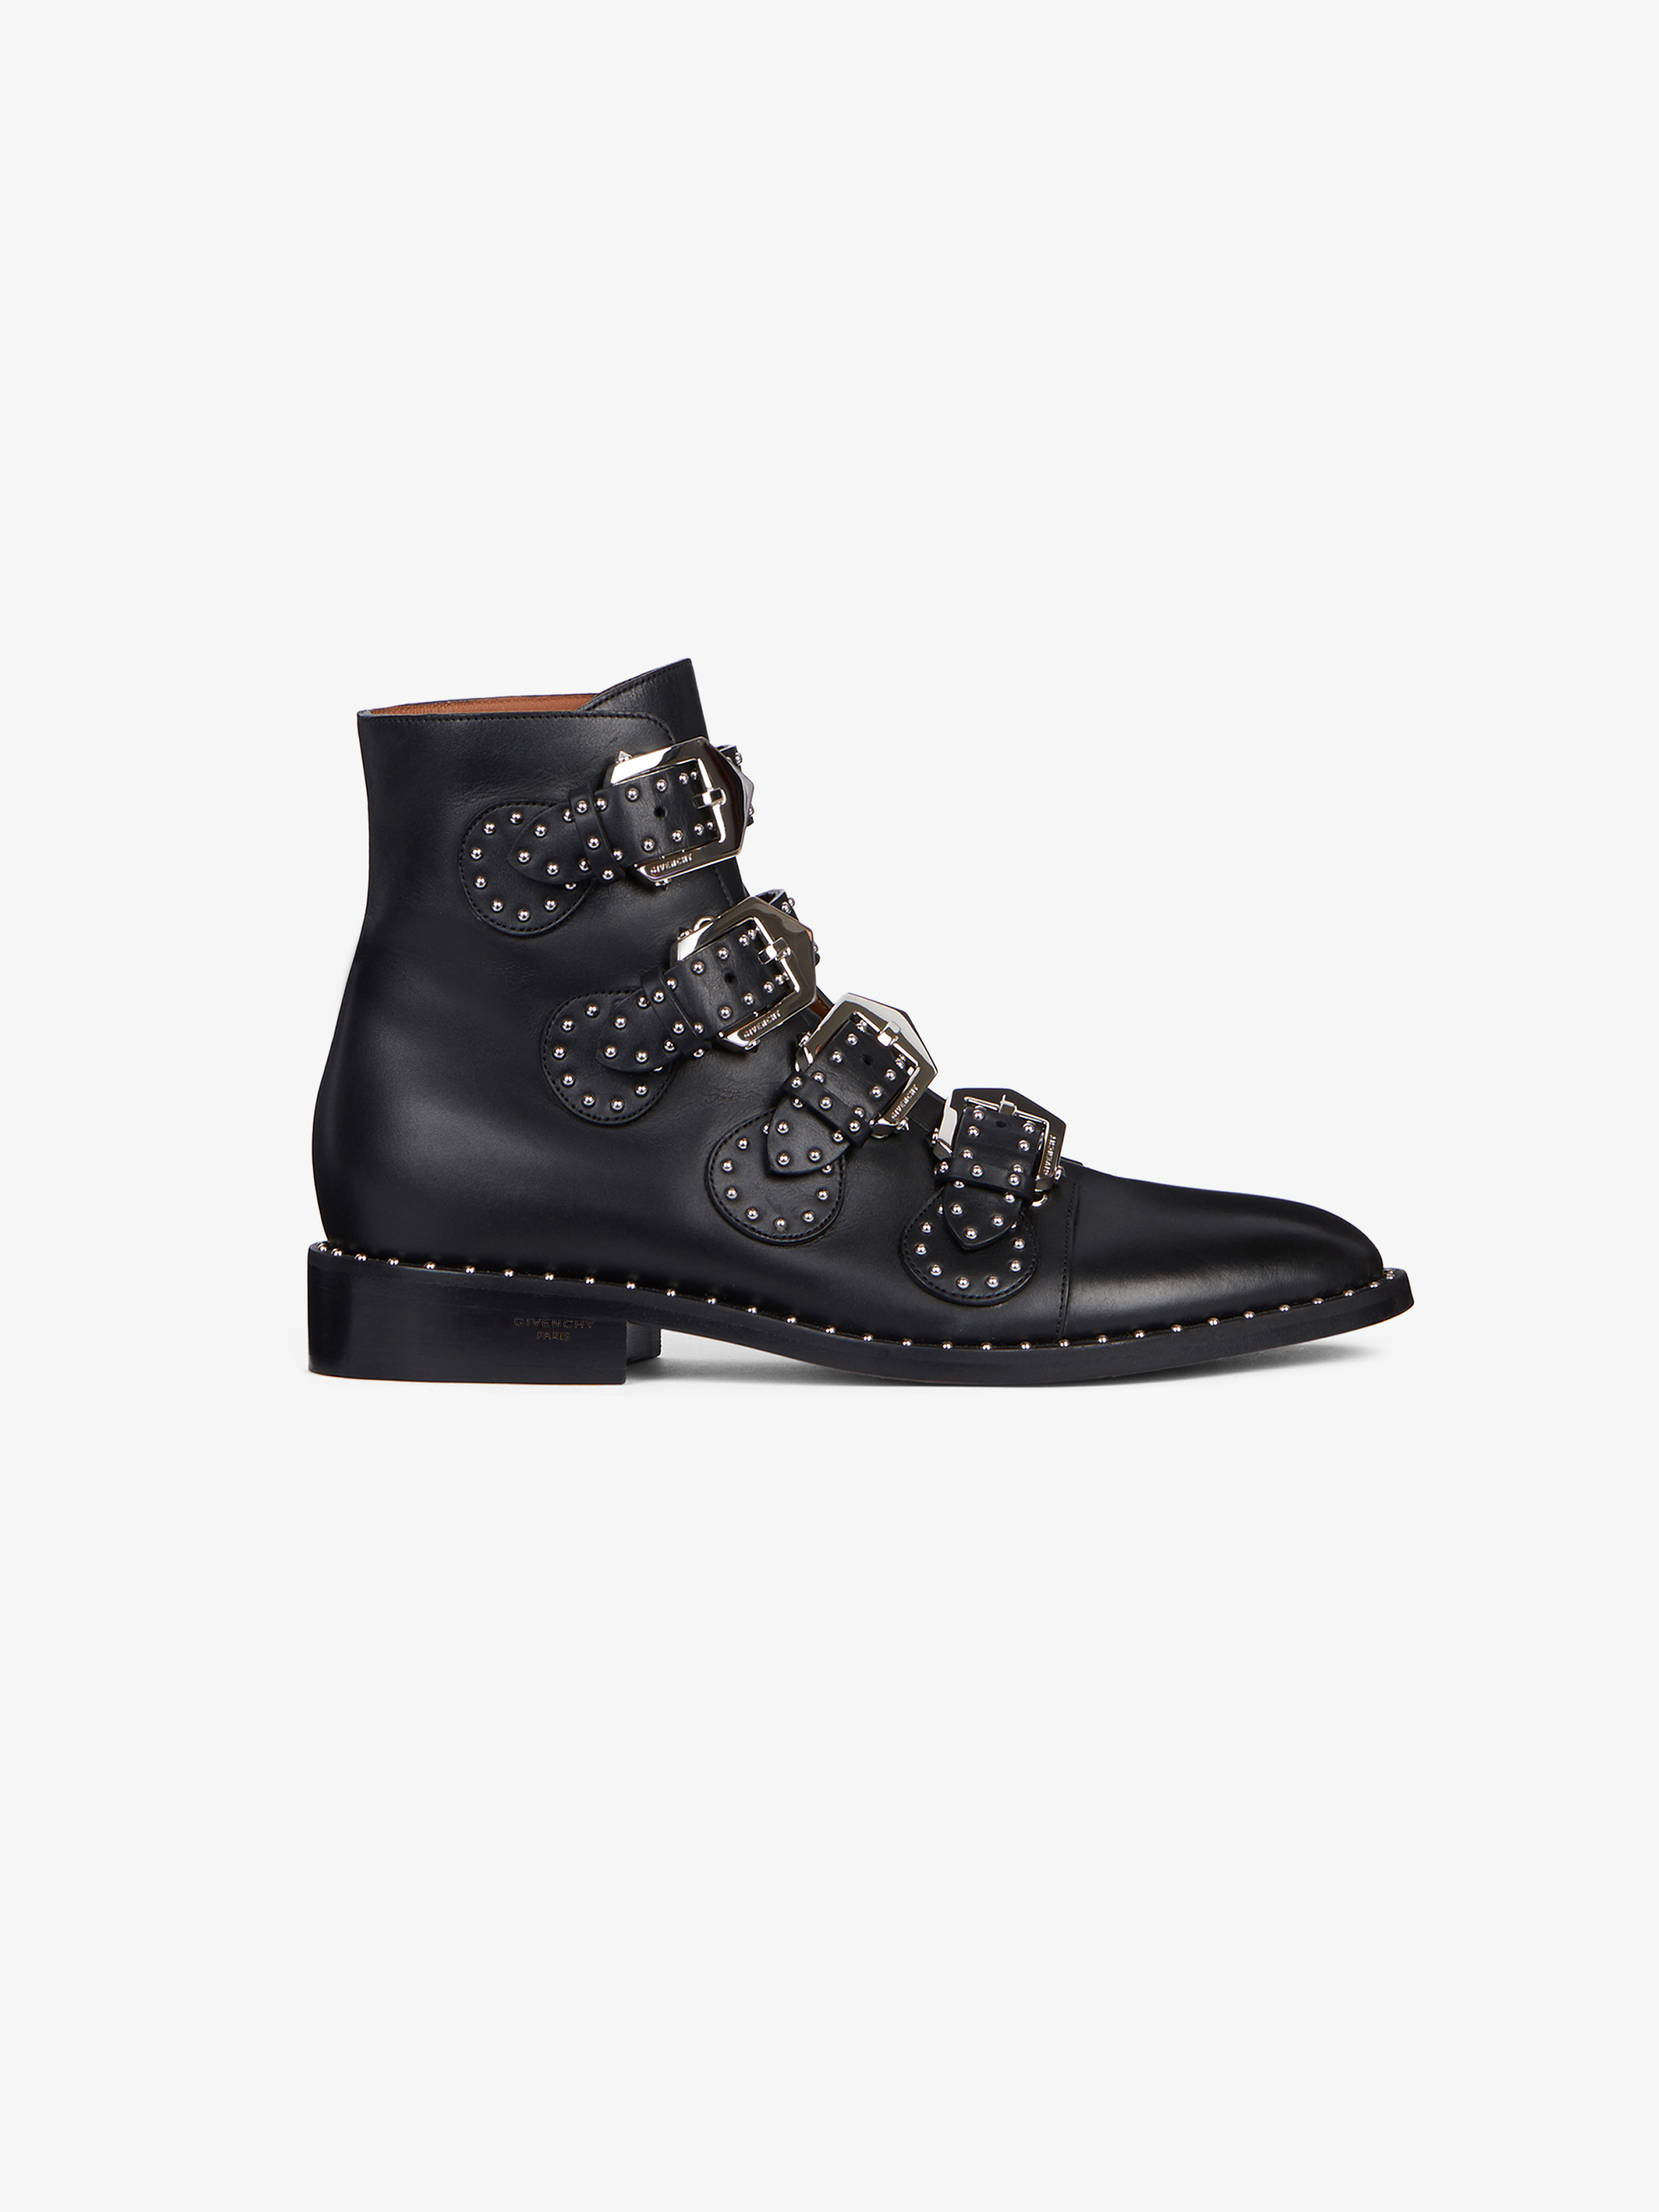 Buckled ankle boots in leather with studs